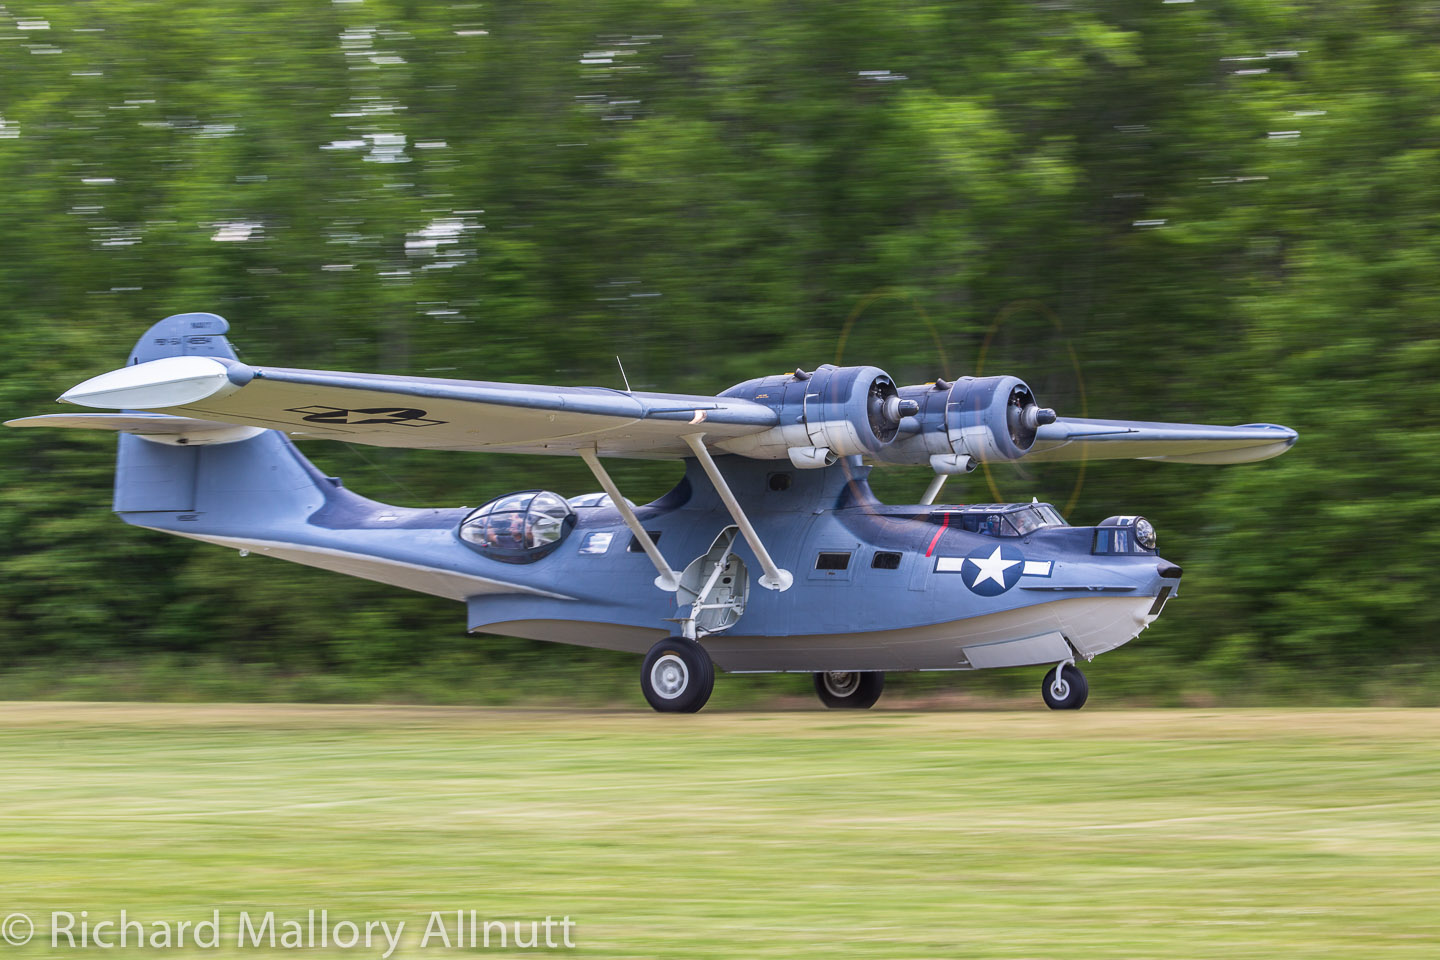 _C8A9450 - Richard Mallory Allnutt photo - Warbirds Over the Beach - Military Aviation Museum - Pungo, VA - May 17, 2014